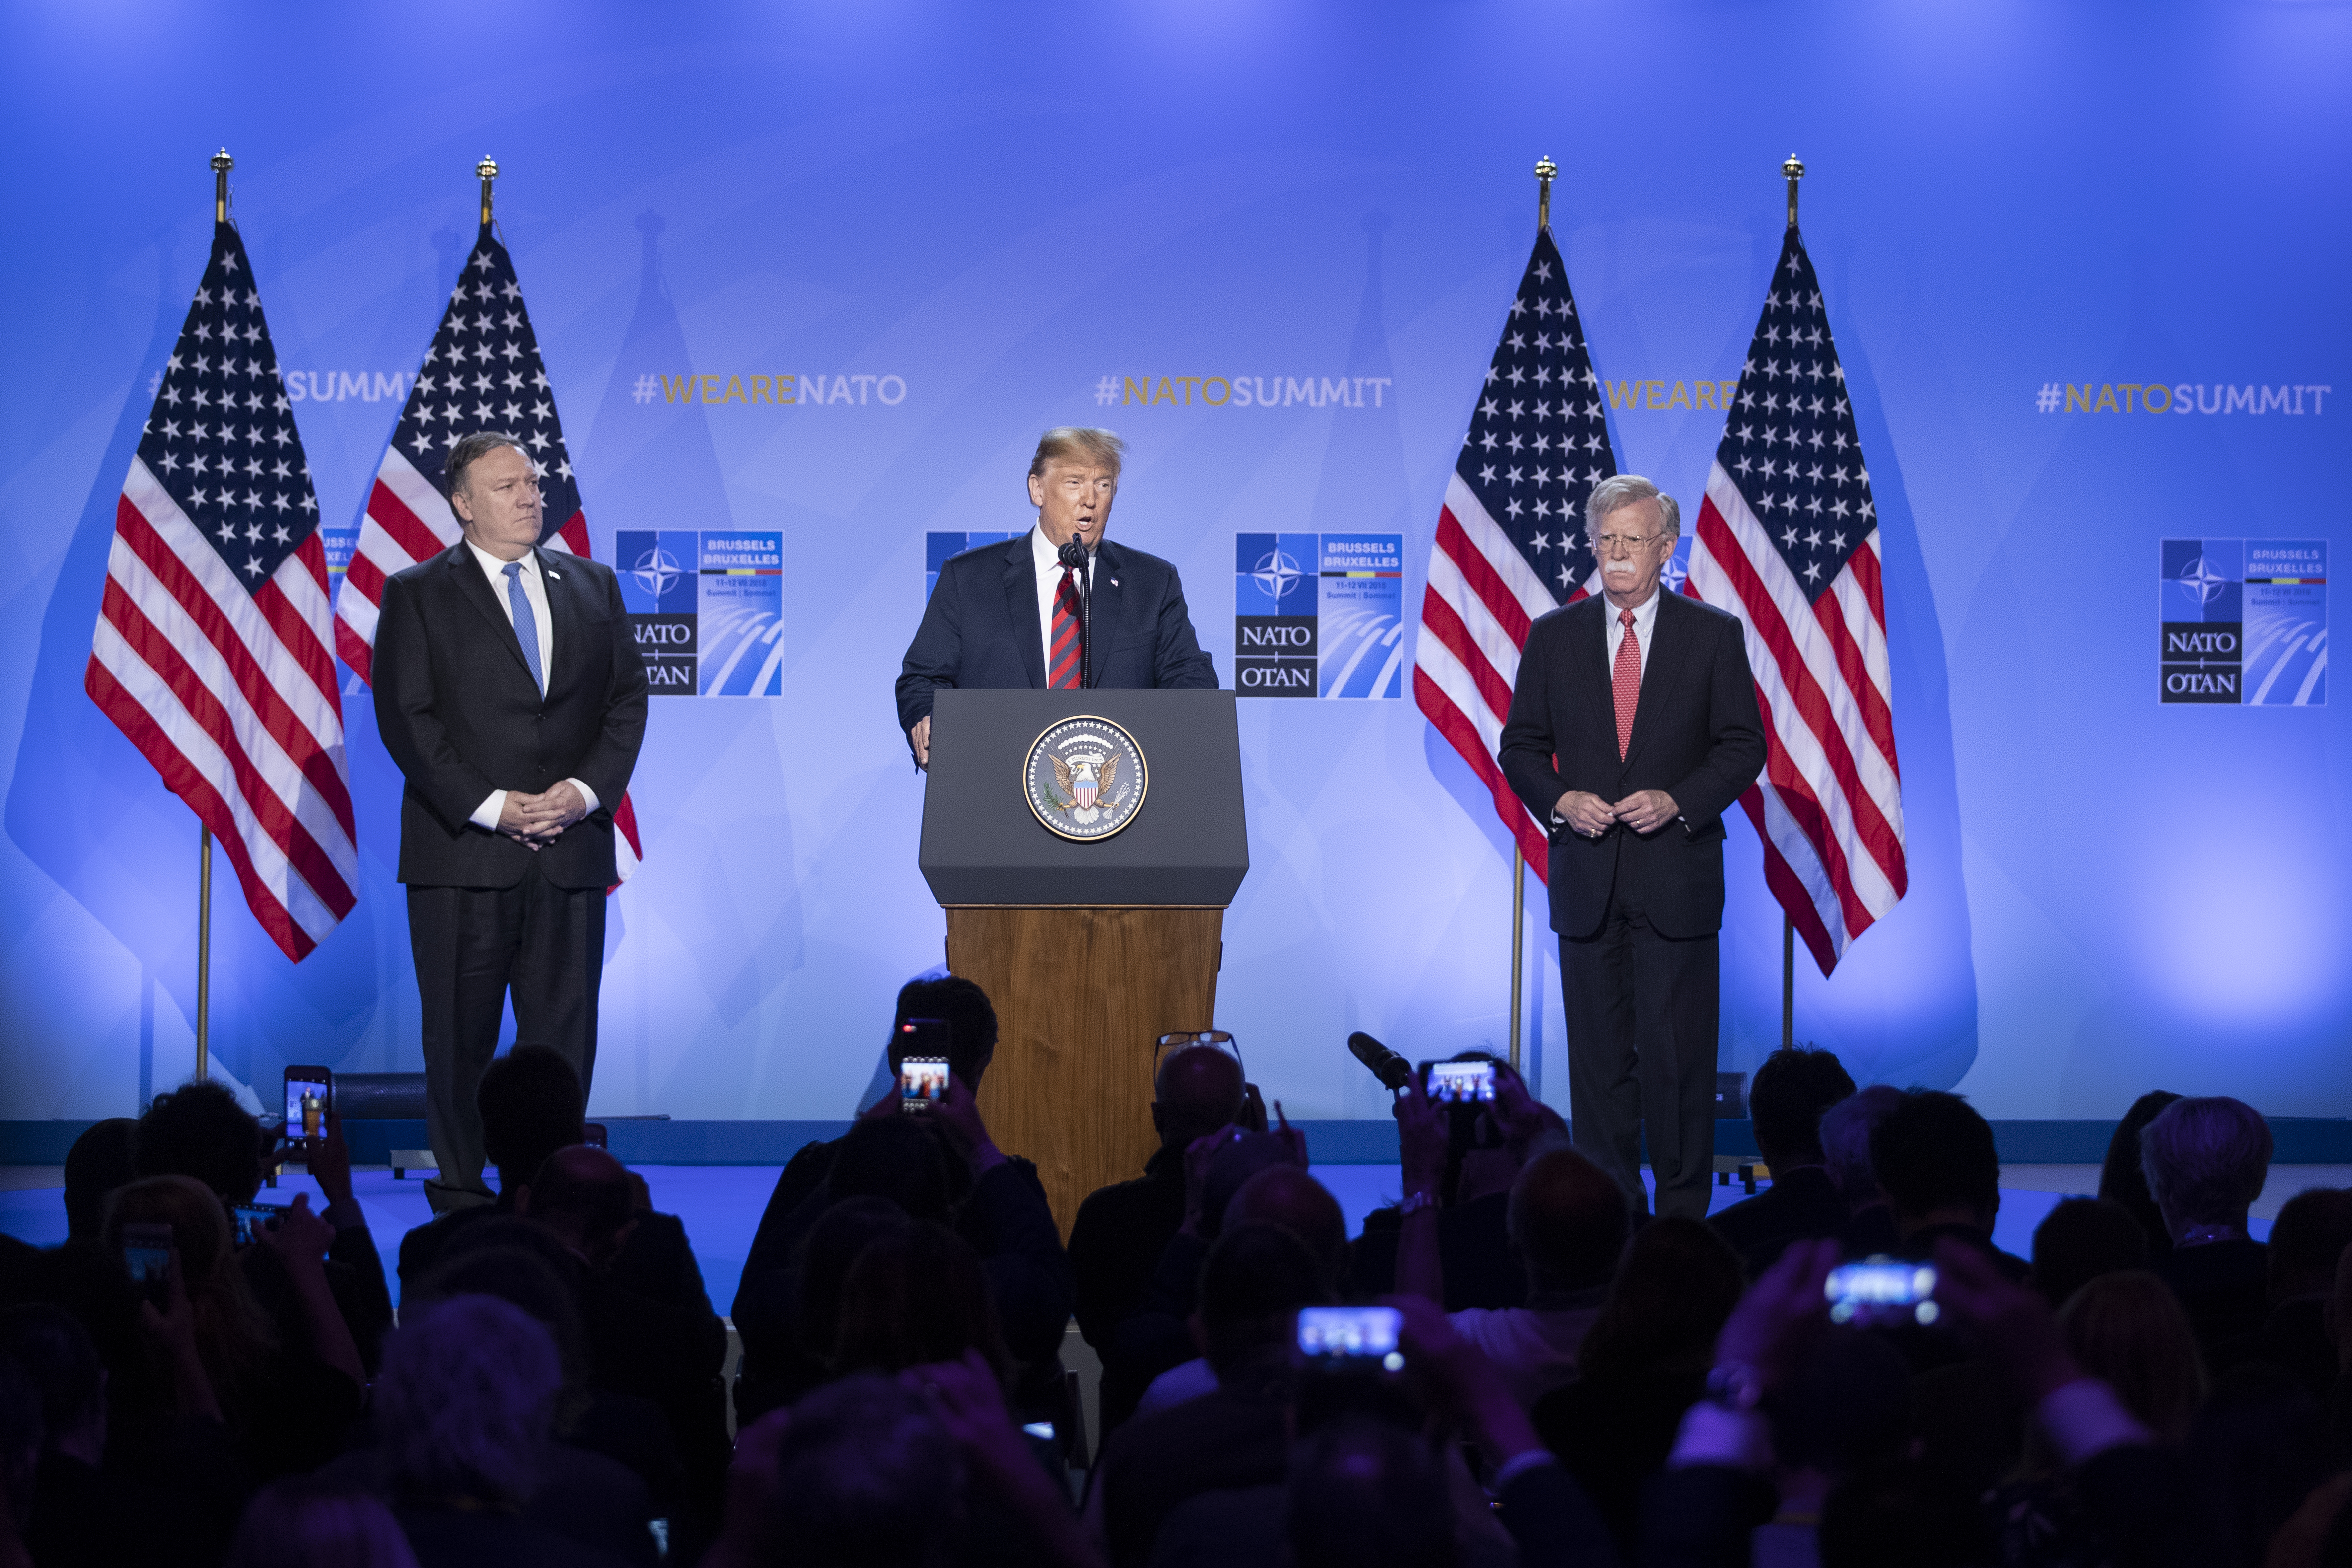 BRUSSELS, BELGIUM - JULY 12: U.S. President Donald Trump (C) speaks in between U.S. Secretary of State Mike Pompeo (L) and National Security Advisor John Bolton during a news conference at the 2018 NATO Summit at NATO headquarters on July 12, 2018 in Brussels, Belgium. Leaders from NATO member and partner states are meeting for a two-day summit, which is being overshadowed by strong demands by U.S. President Trump for most NATO member countries to spend more on defense. (Photo by Jasper Juinen/Getty Images)